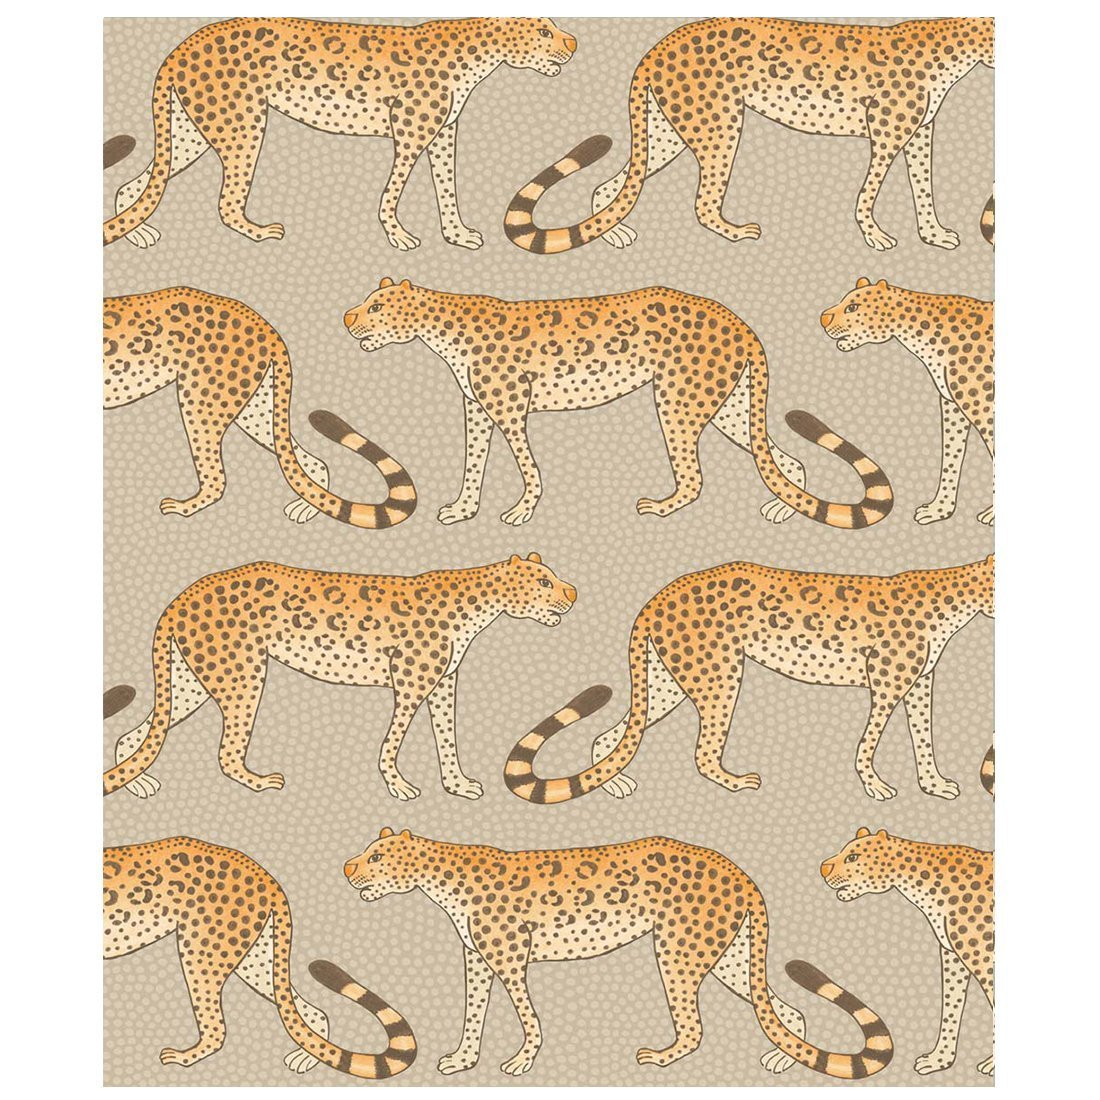 Cole & Son Ardmore Leopard Walk Behang 1092010